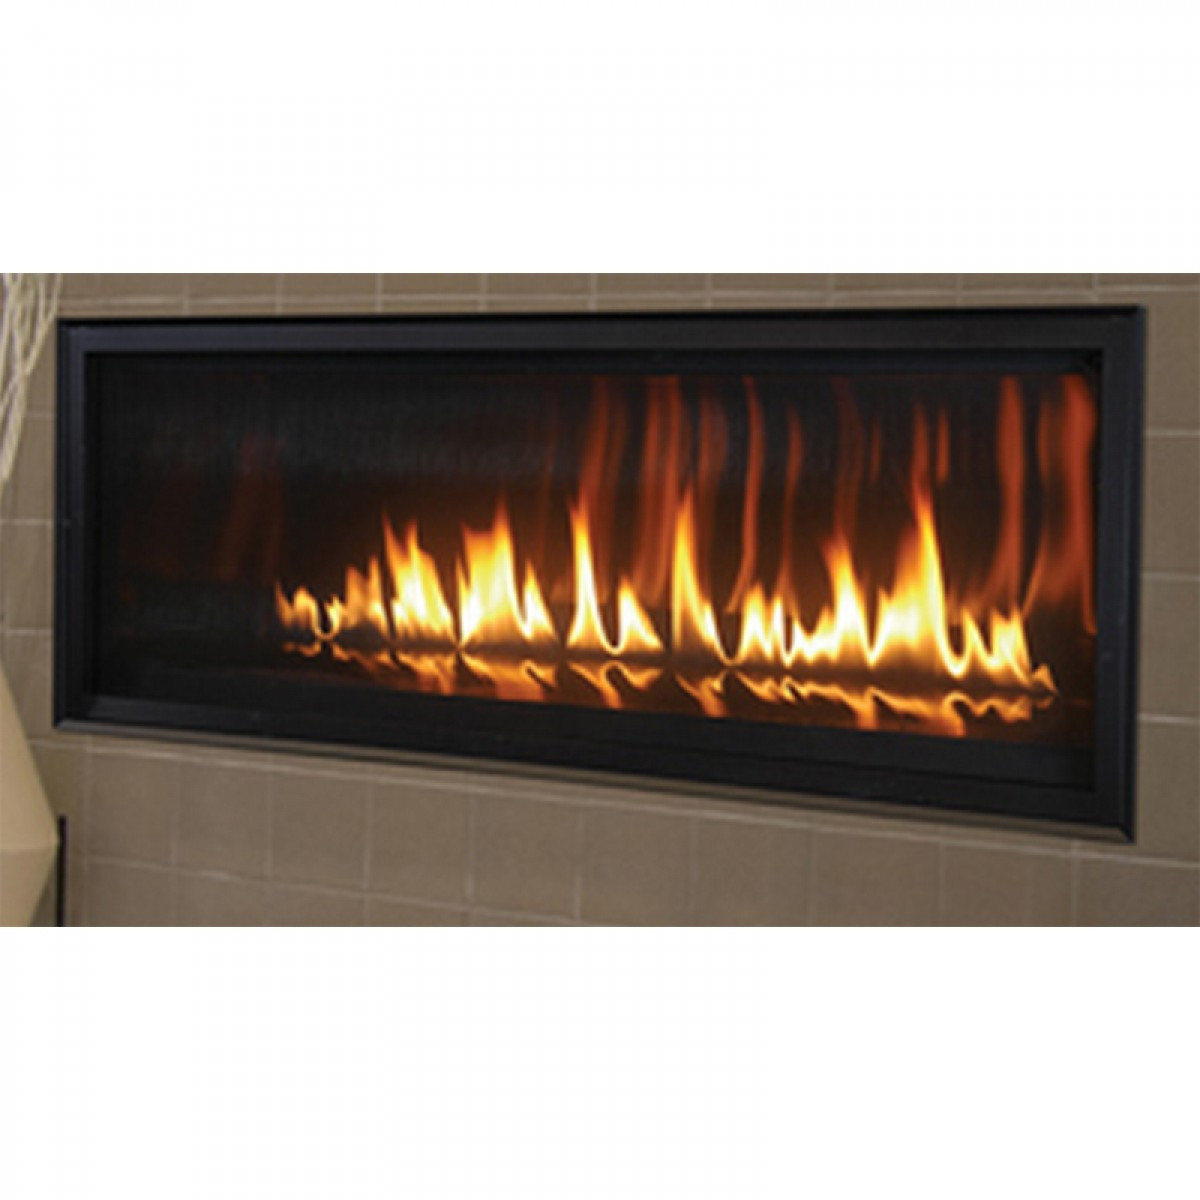 Best ideas about Direct Vent Gas Fireplace . Save or Pin IHP Superior DRL6500 Direct Vent Linear Louverless Gas Now.